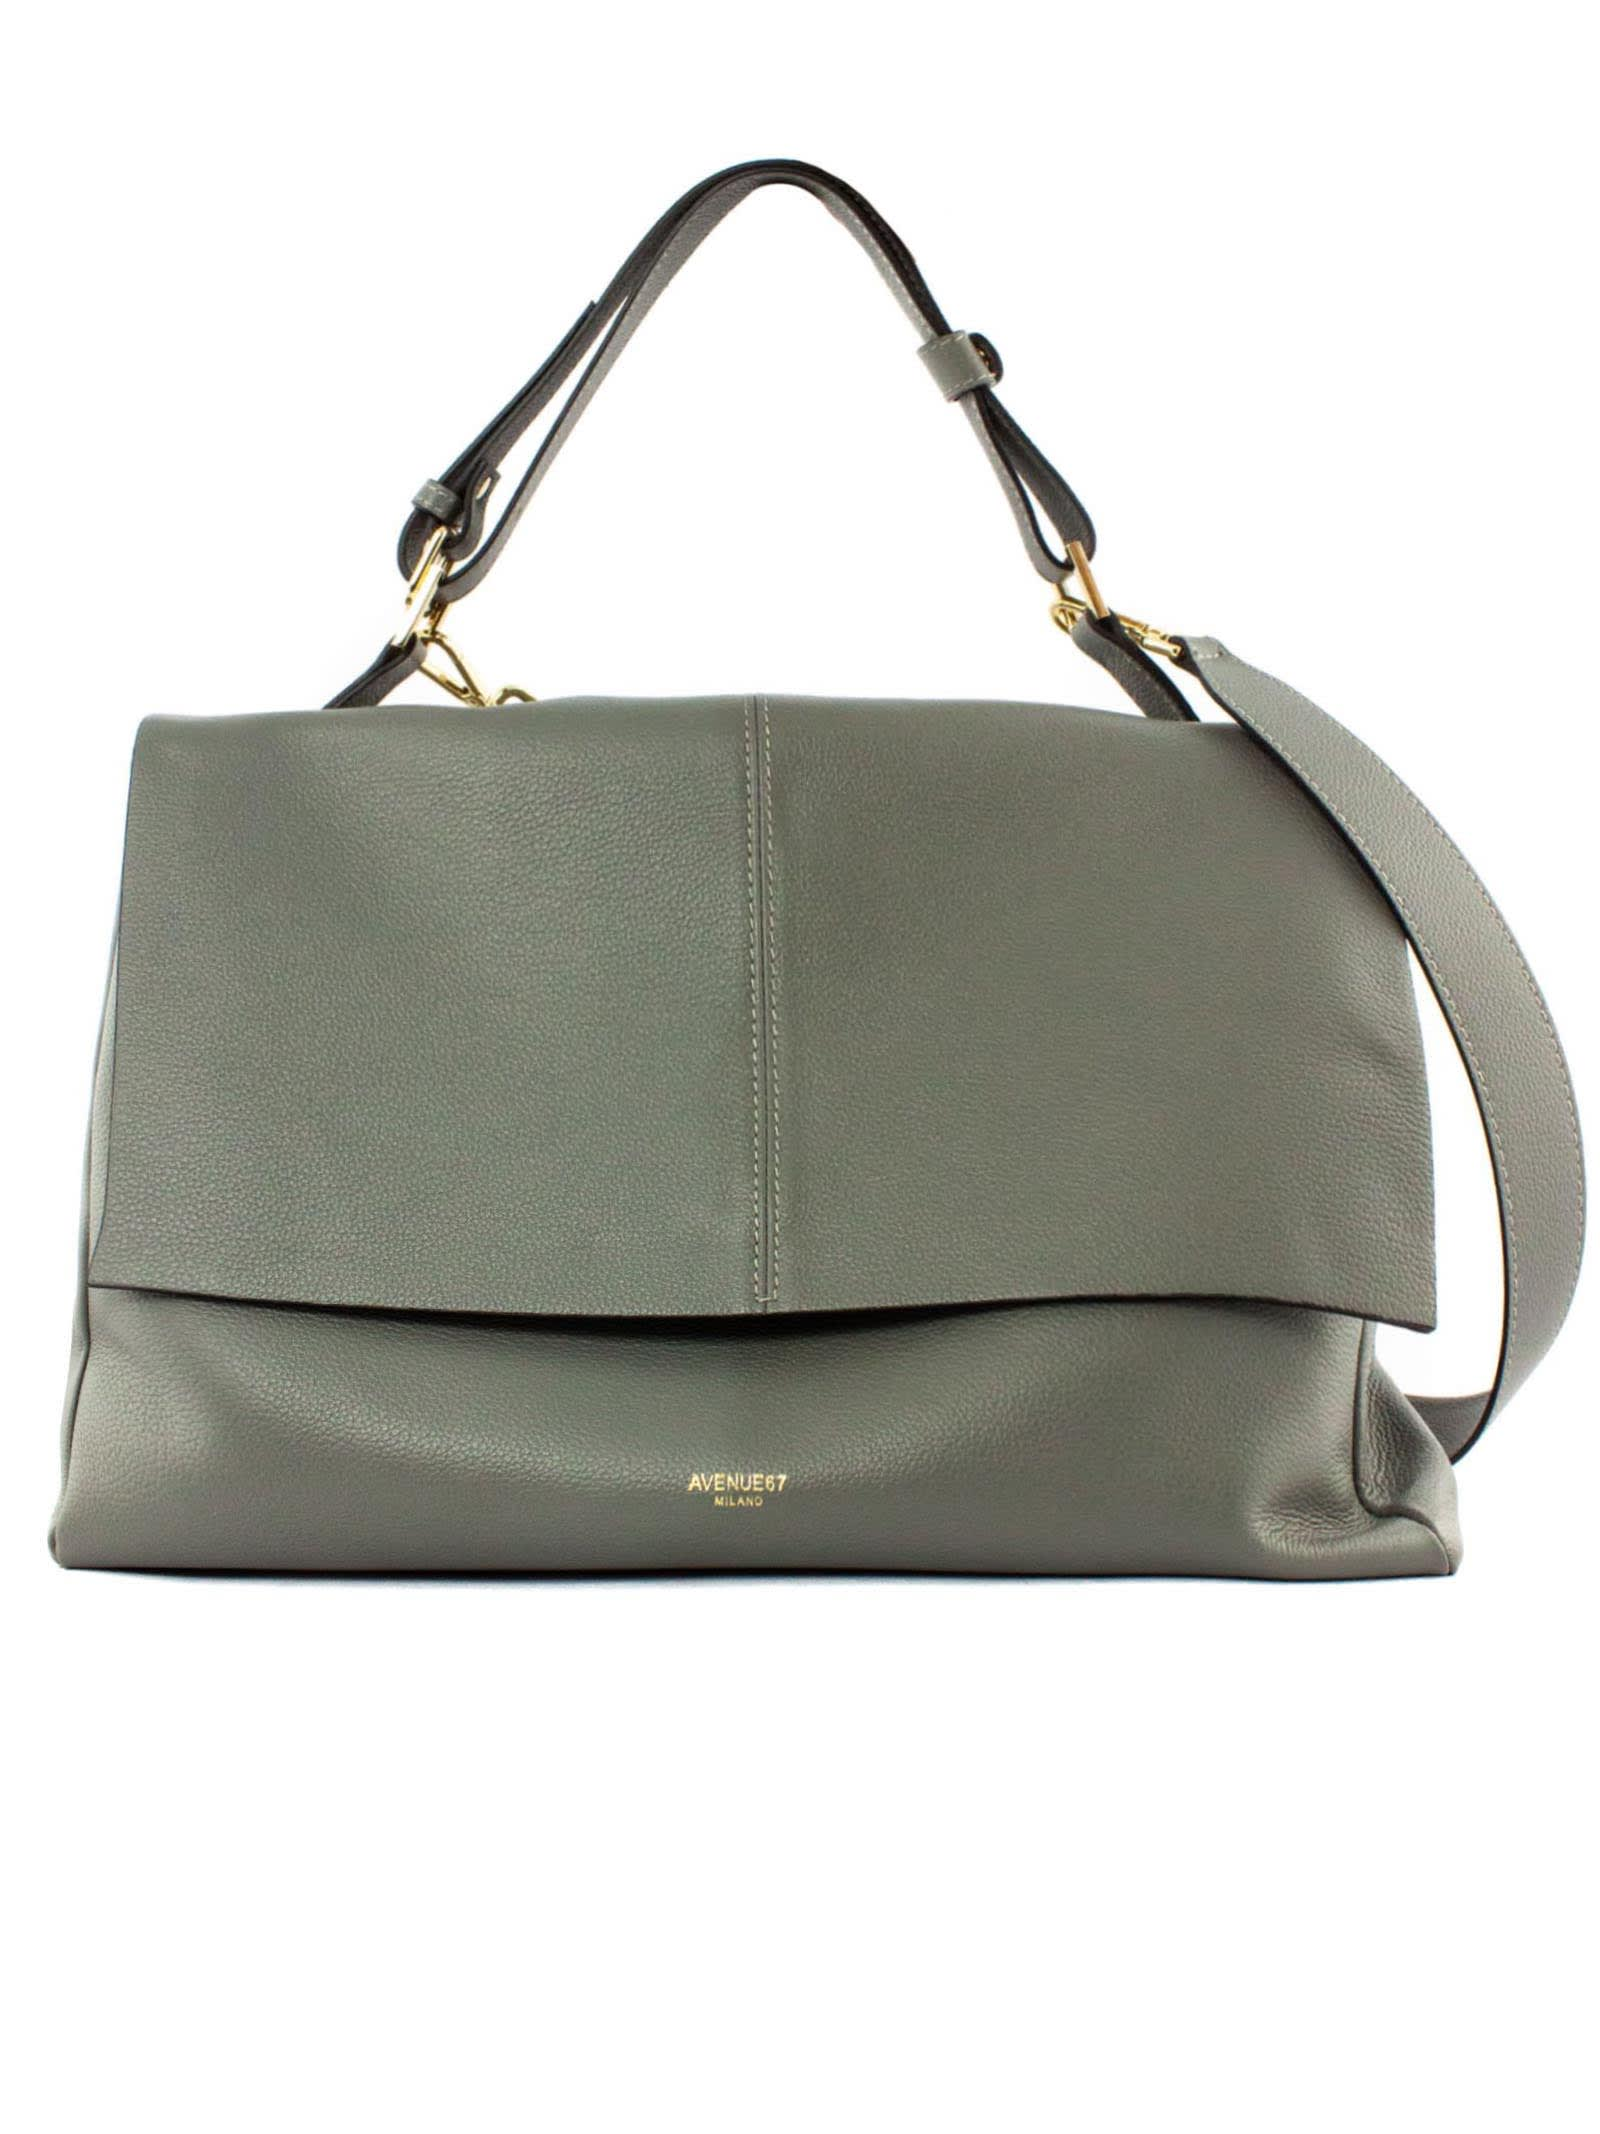 Elettra Giant Bag In Soft Grey Leather